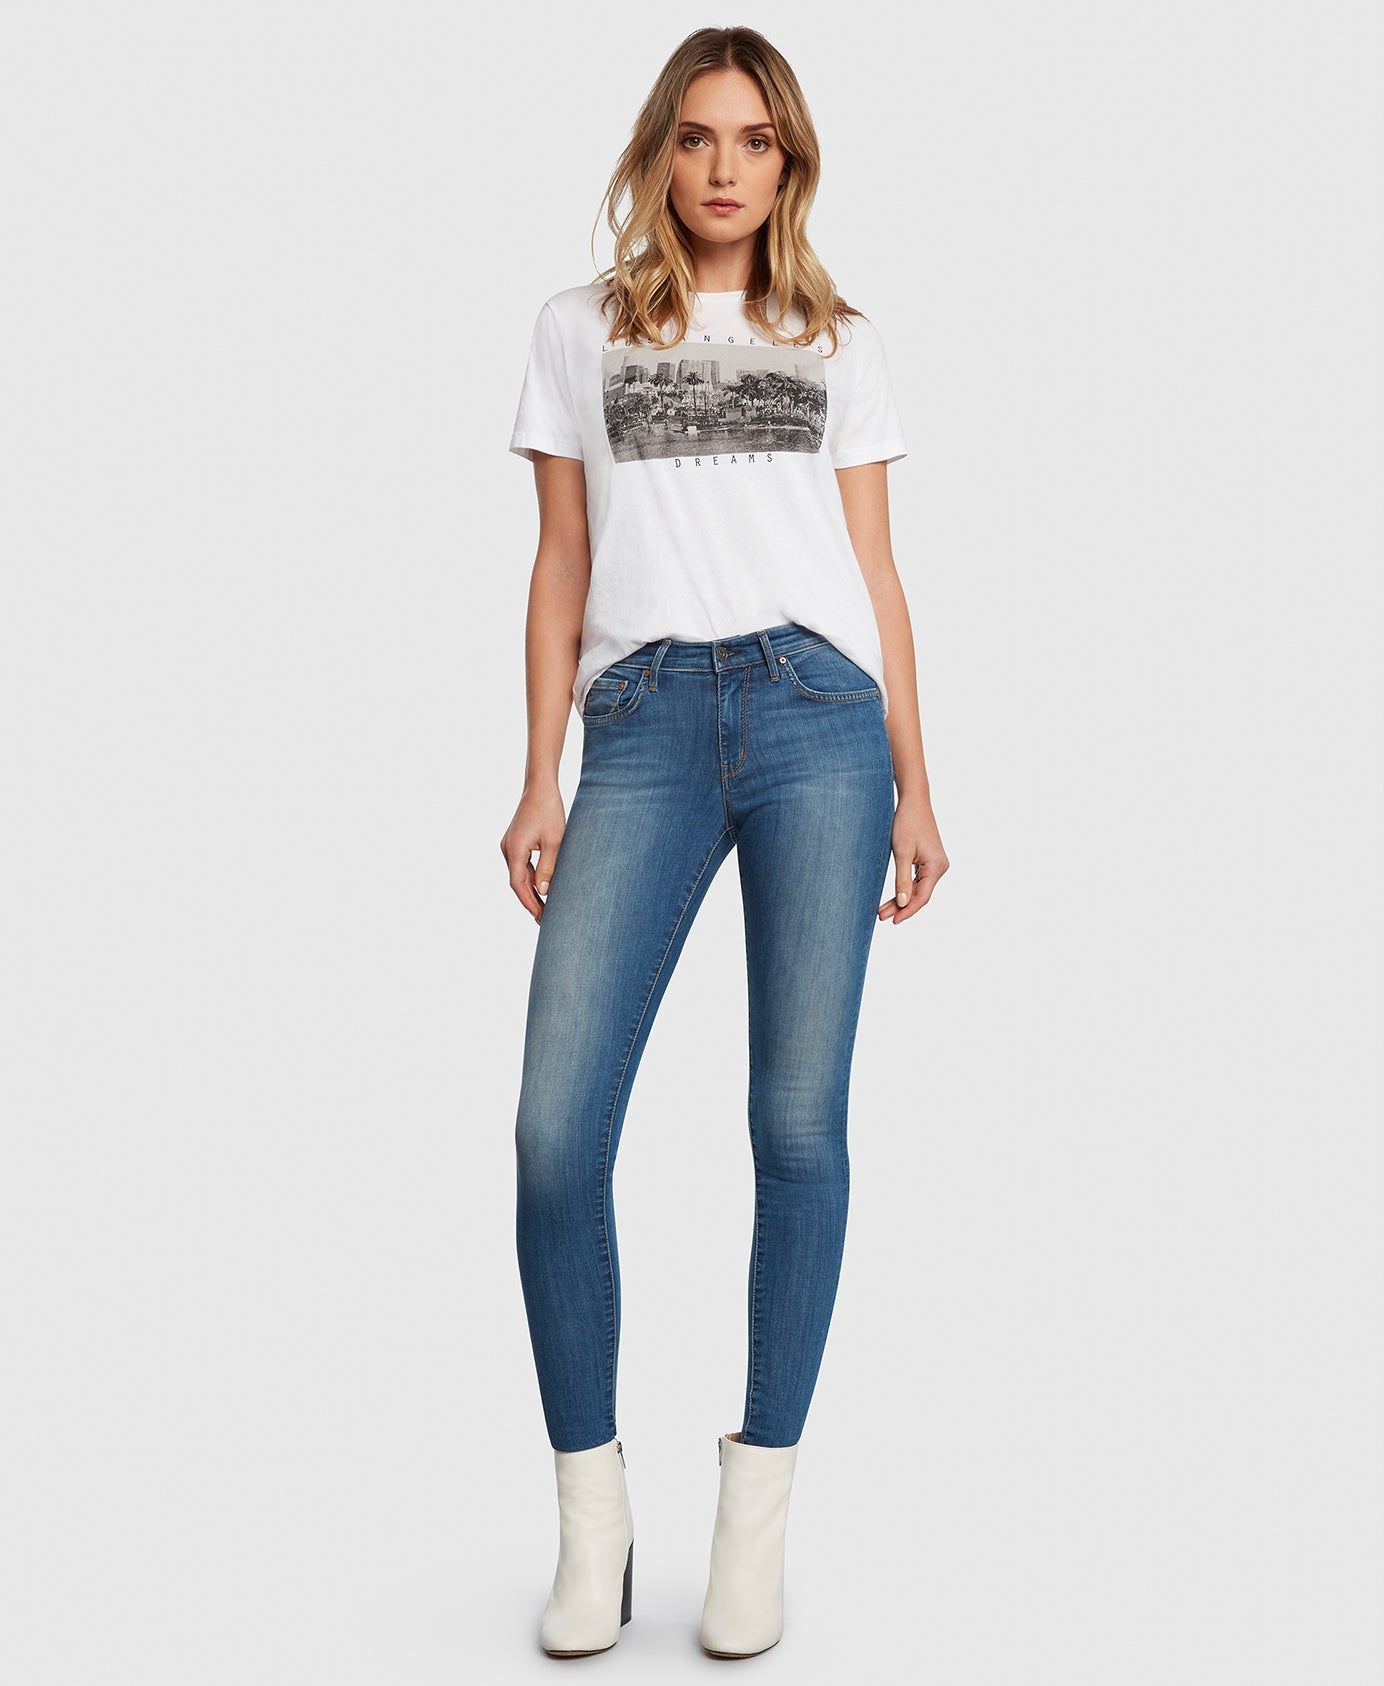 DREAMER in Escapade Principle Denim skinny jeans